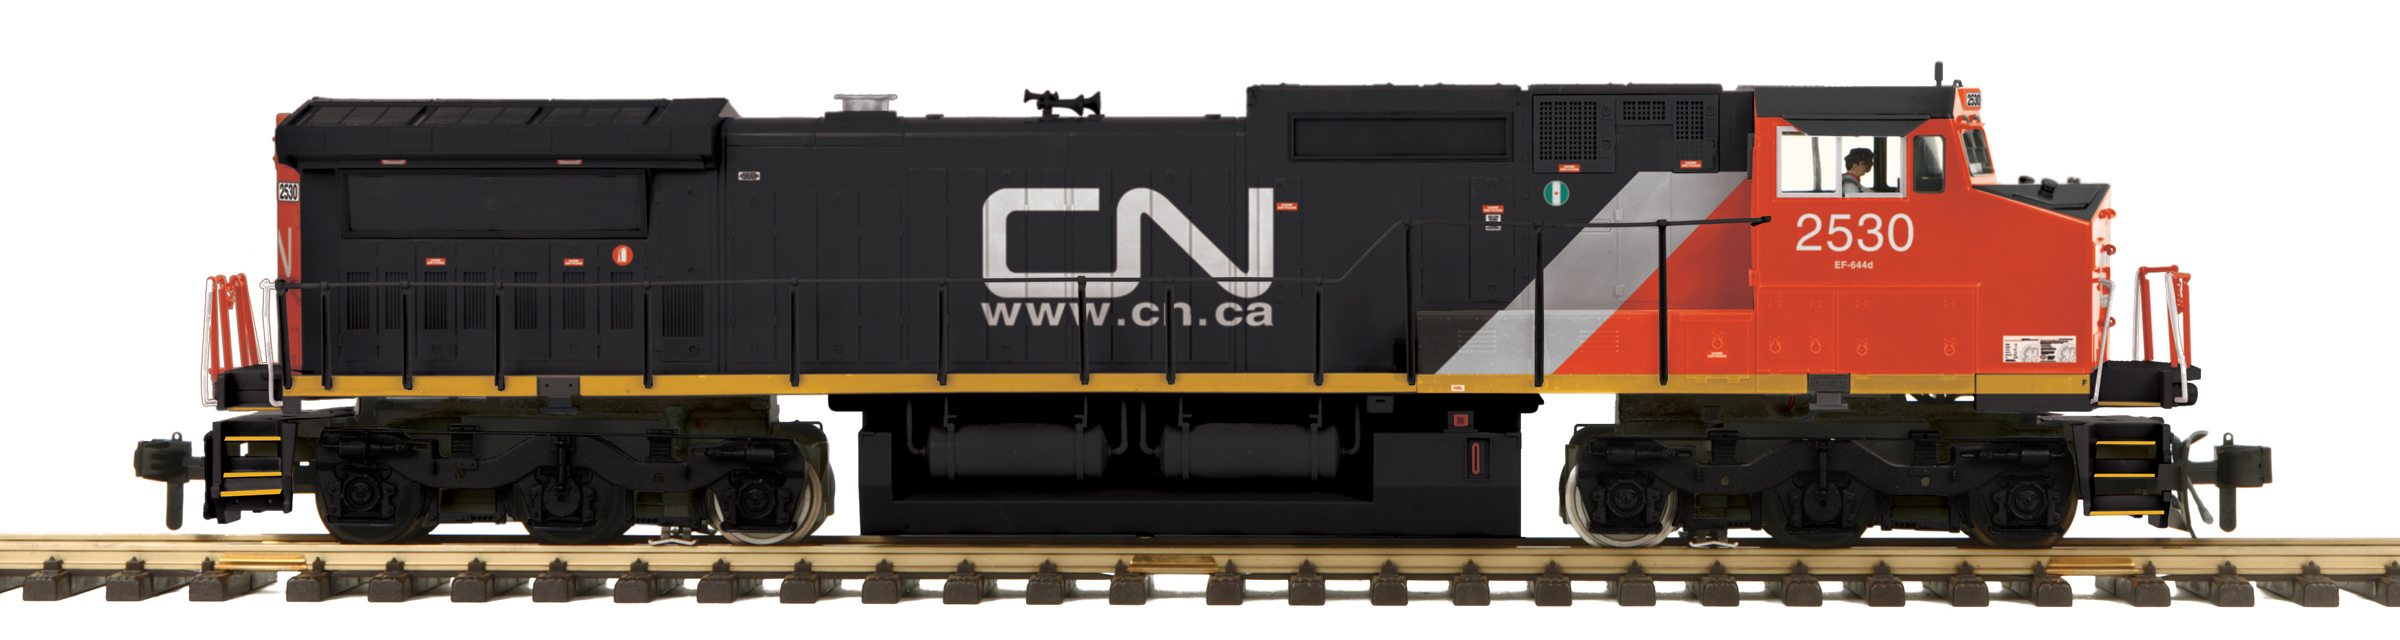 Railking Dash-8 Diesel Engine Canadian National 70-2126-1